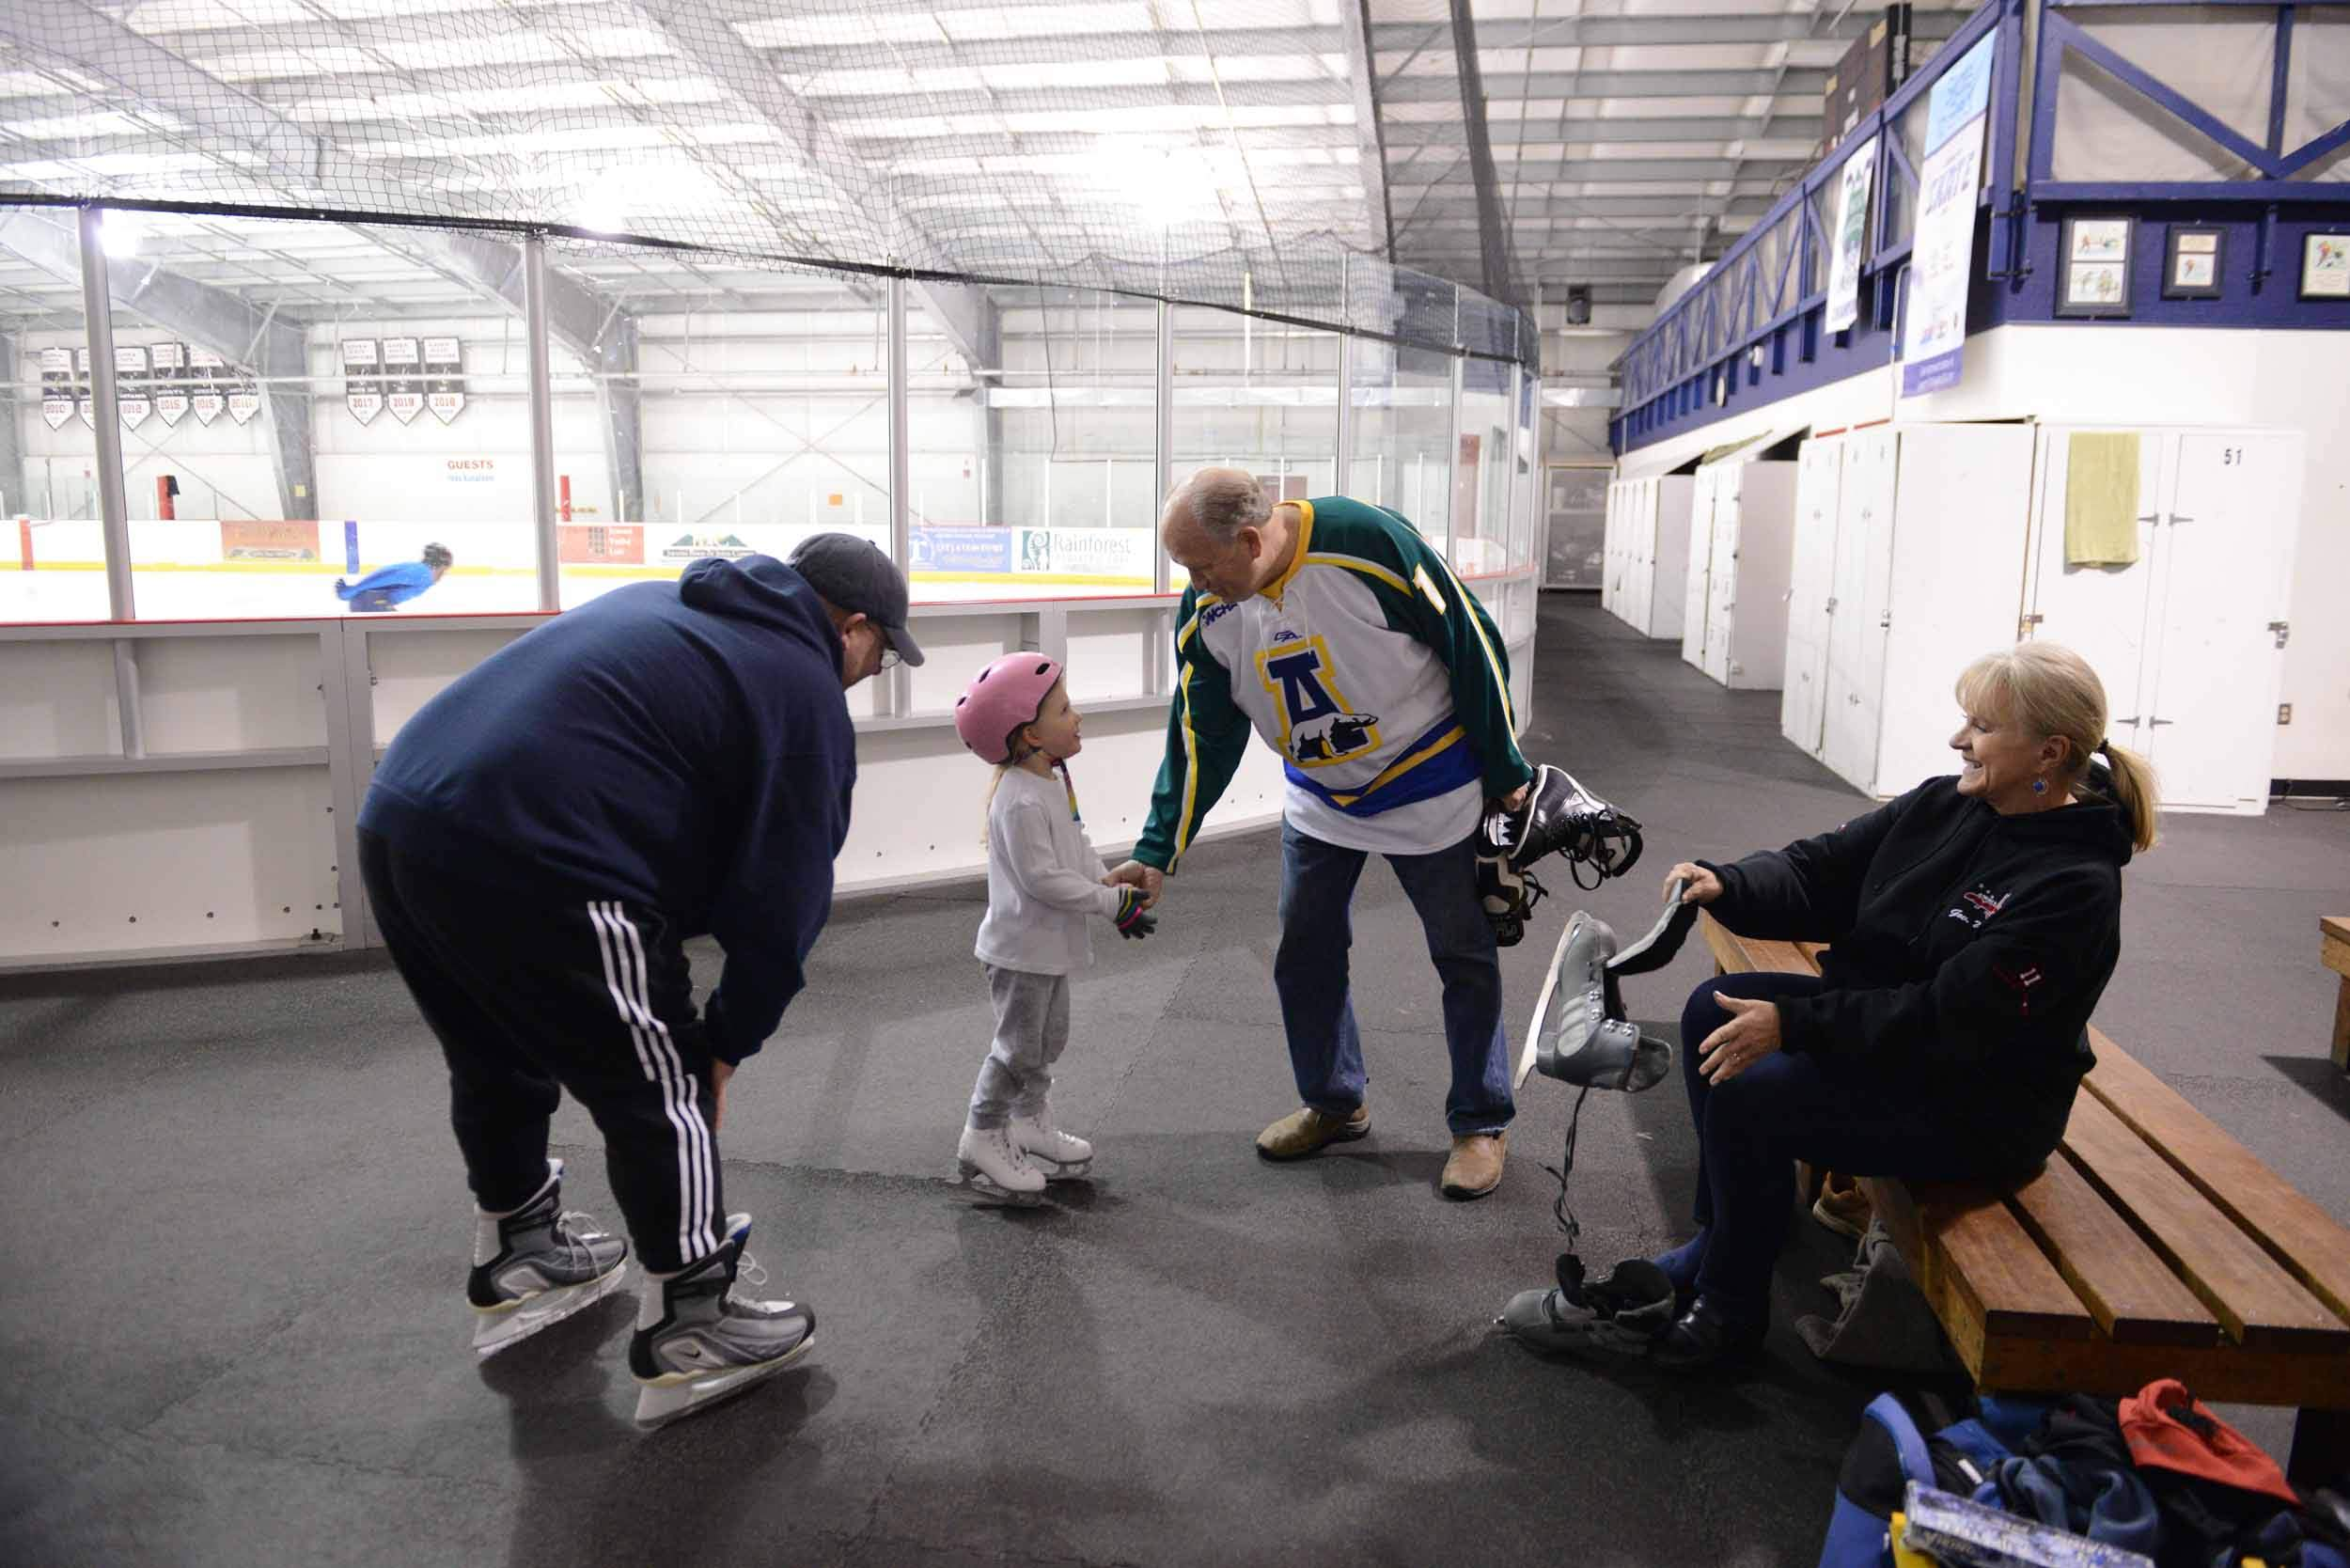 Governor Walker and First Lady Donna Walker greet a fellow skater at the Treadwell Ice Arena in Juneau, during the waning days of the administration. October 2018.